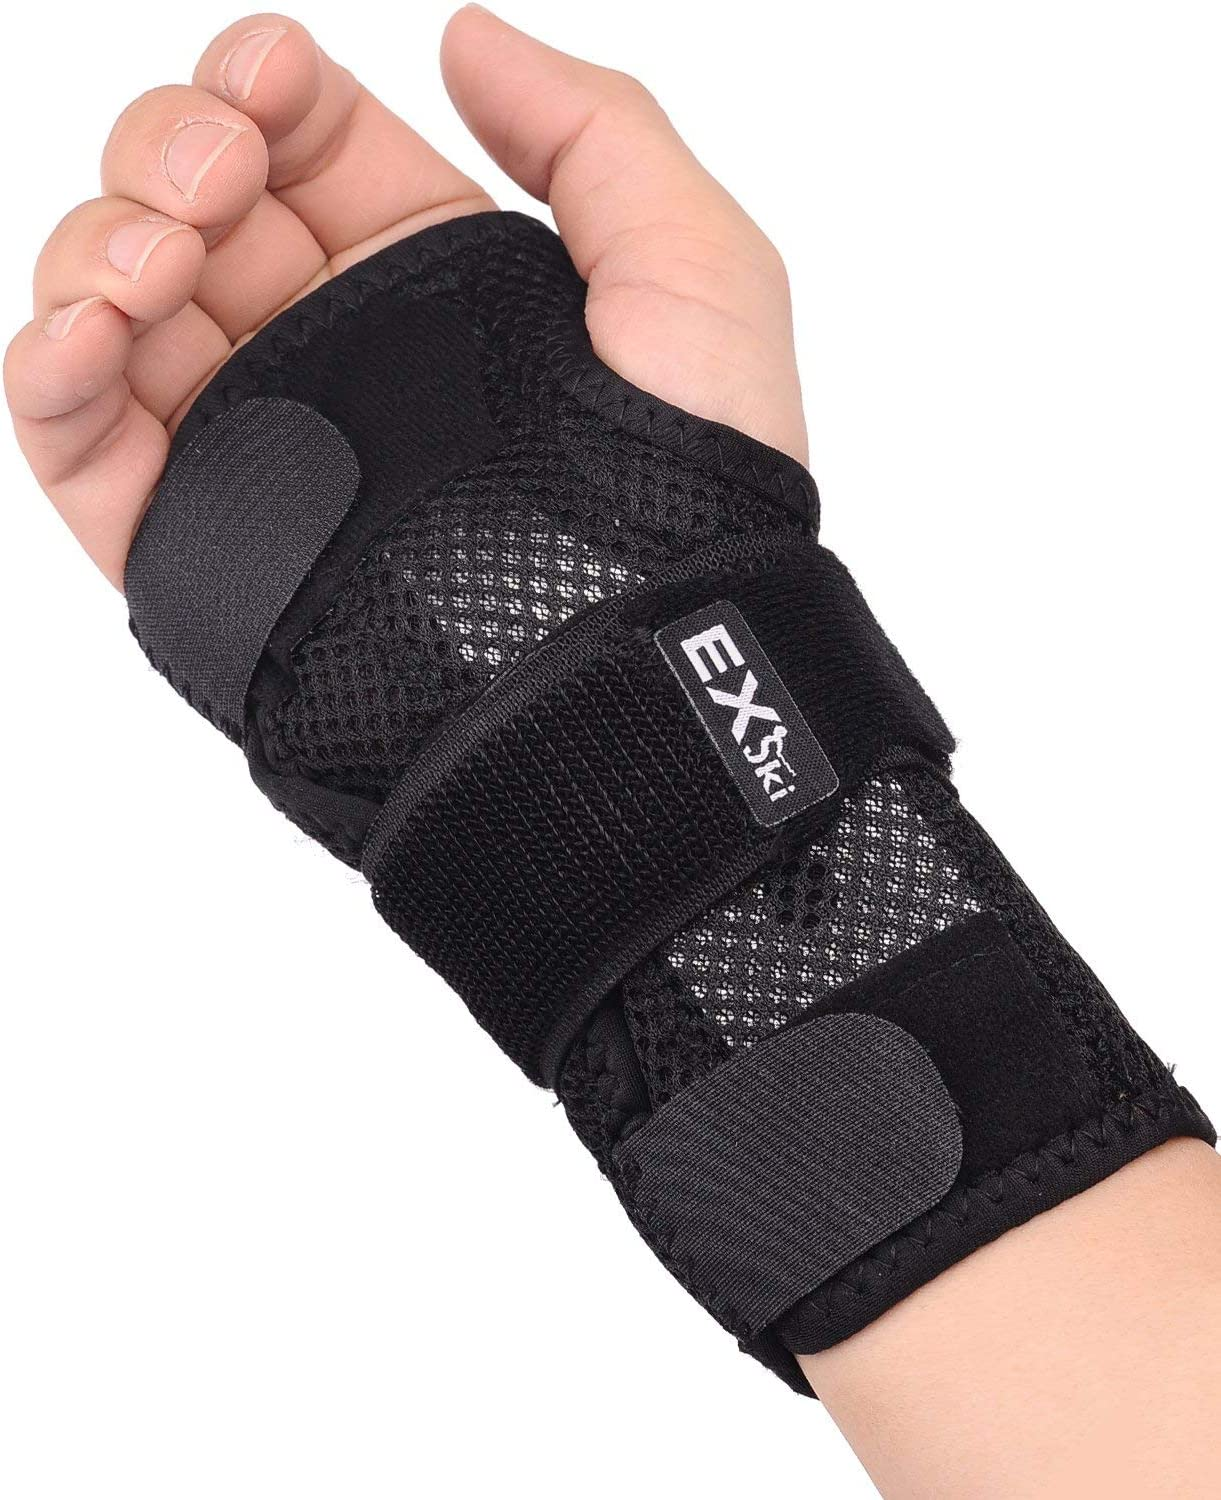 EXski Wrist Brace for Carpal Tunnel, Night Sleep Wrist Support Brace with Removable Metal Splints Right Hand Large